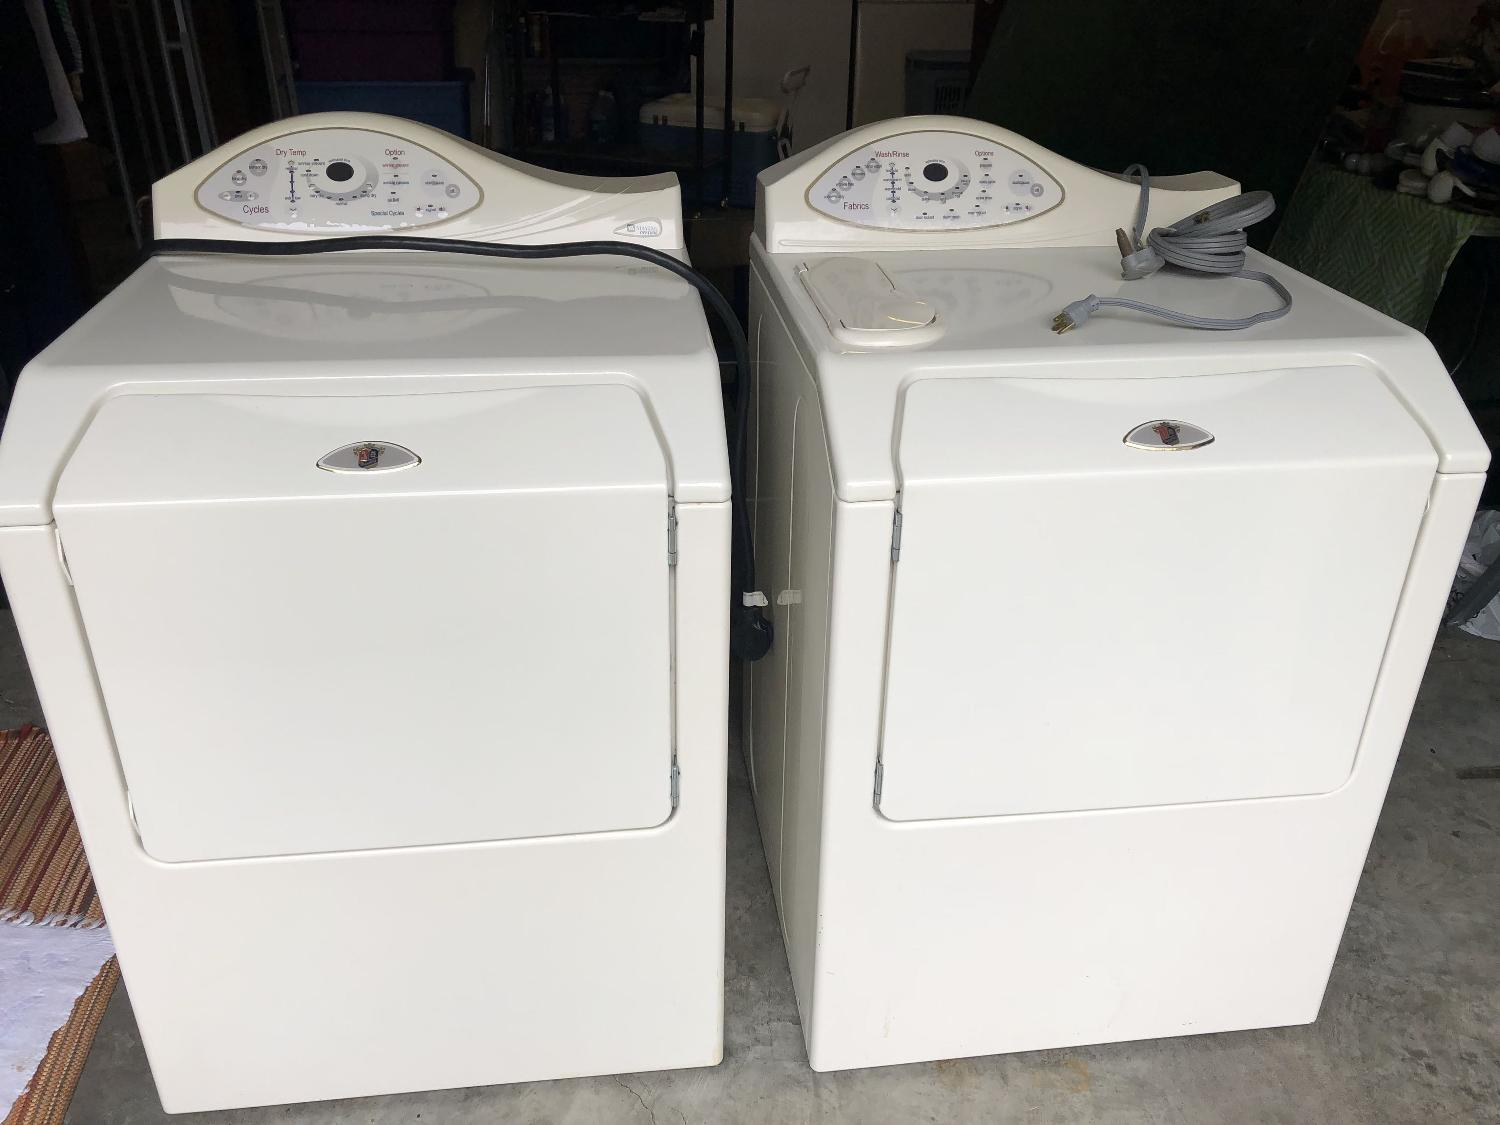 Find More Maytag Neptune Washer And Dryer Pair For Sale At